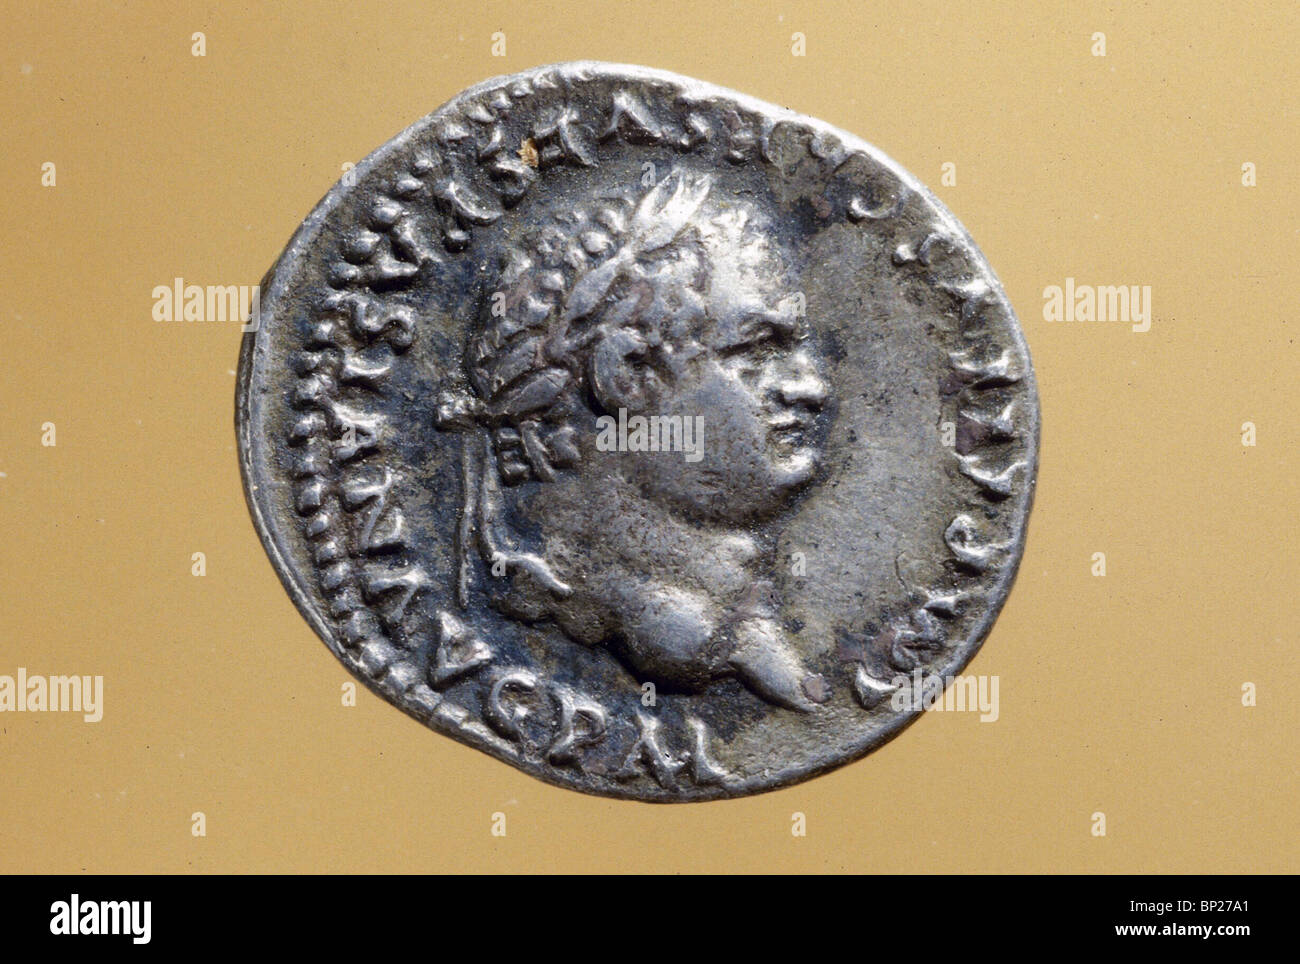 1571. SILVER COIN WITH THE HEAD OF EMPEROR TITUS (69 - 81 AD.) - Stock Image